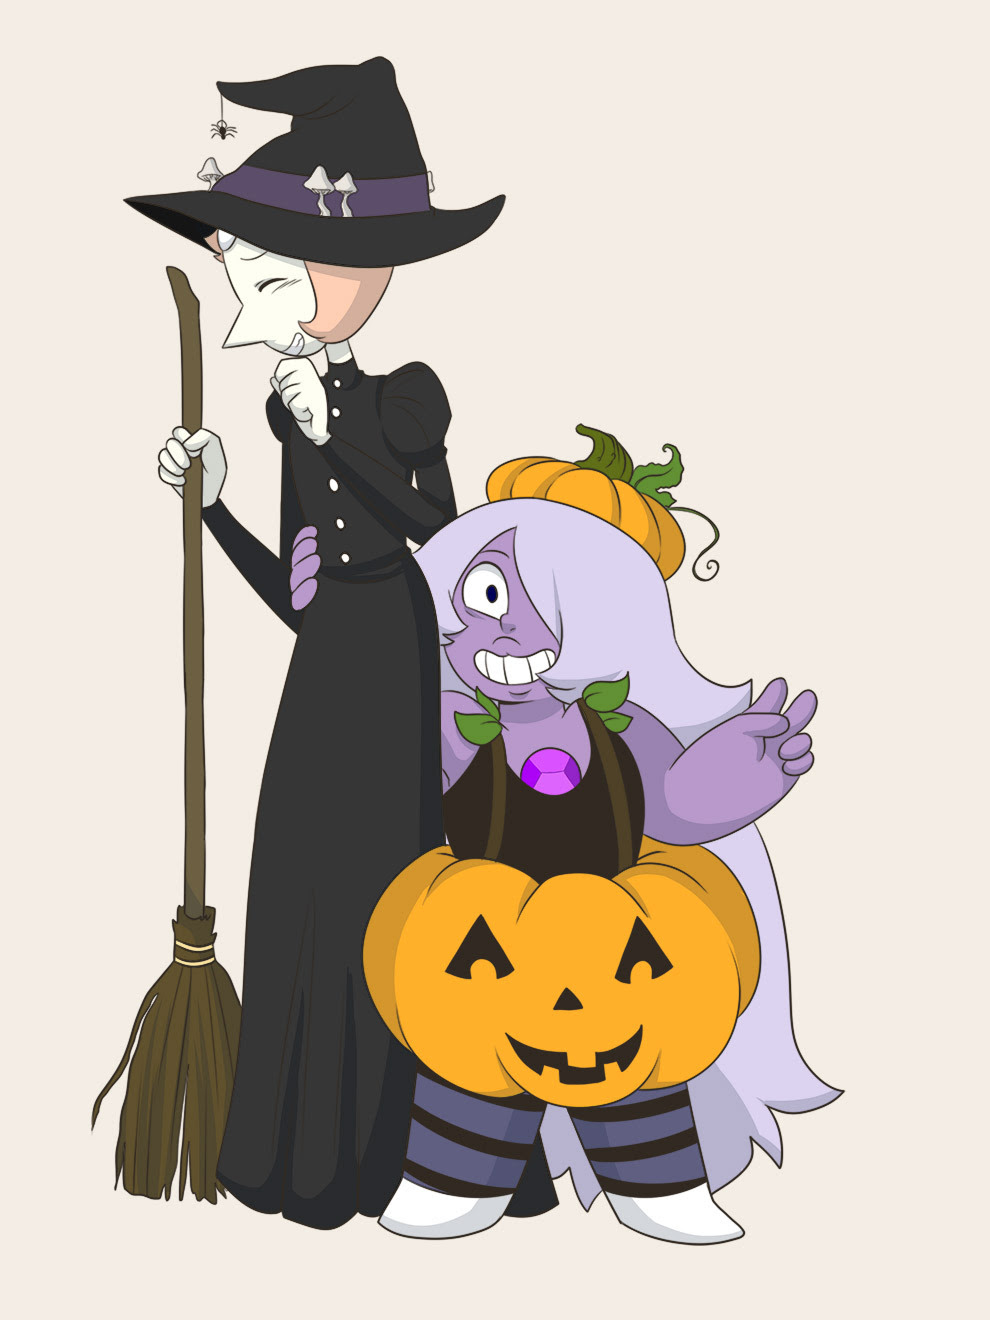 buddy-felt said: Could you draw something Pearlmethyst and Halloween-y (maybe them in their costumes)? Answer: A witch and a pumpkin!